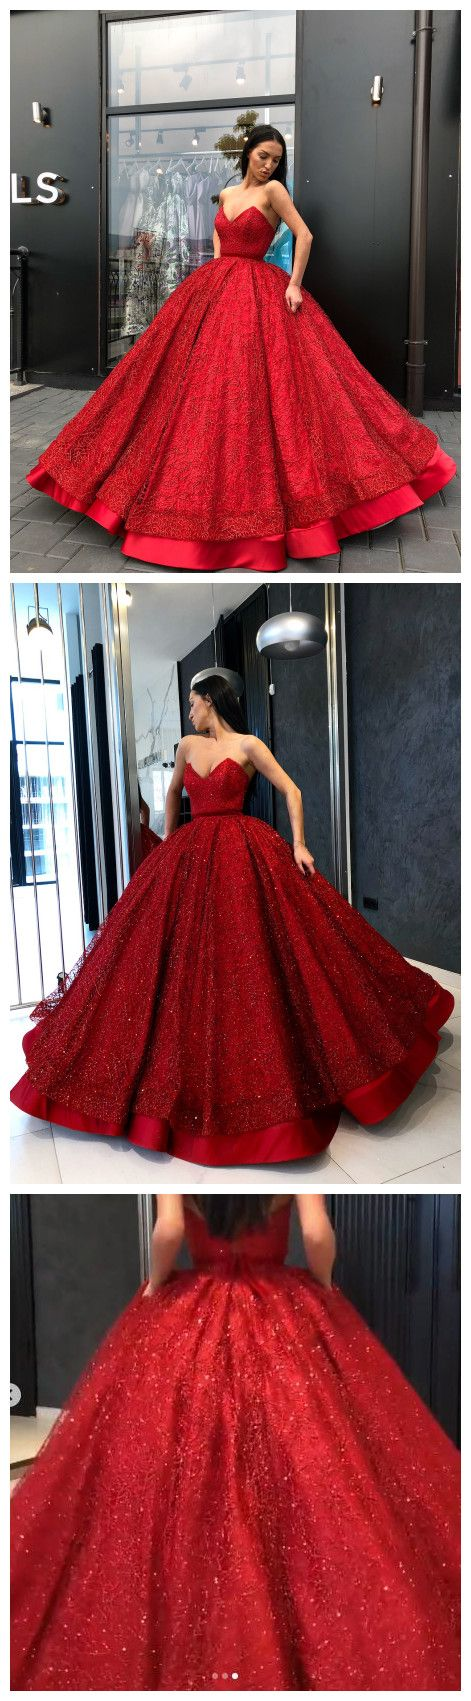 Chic ball gowns red prom dresses sparkly long party prom dress